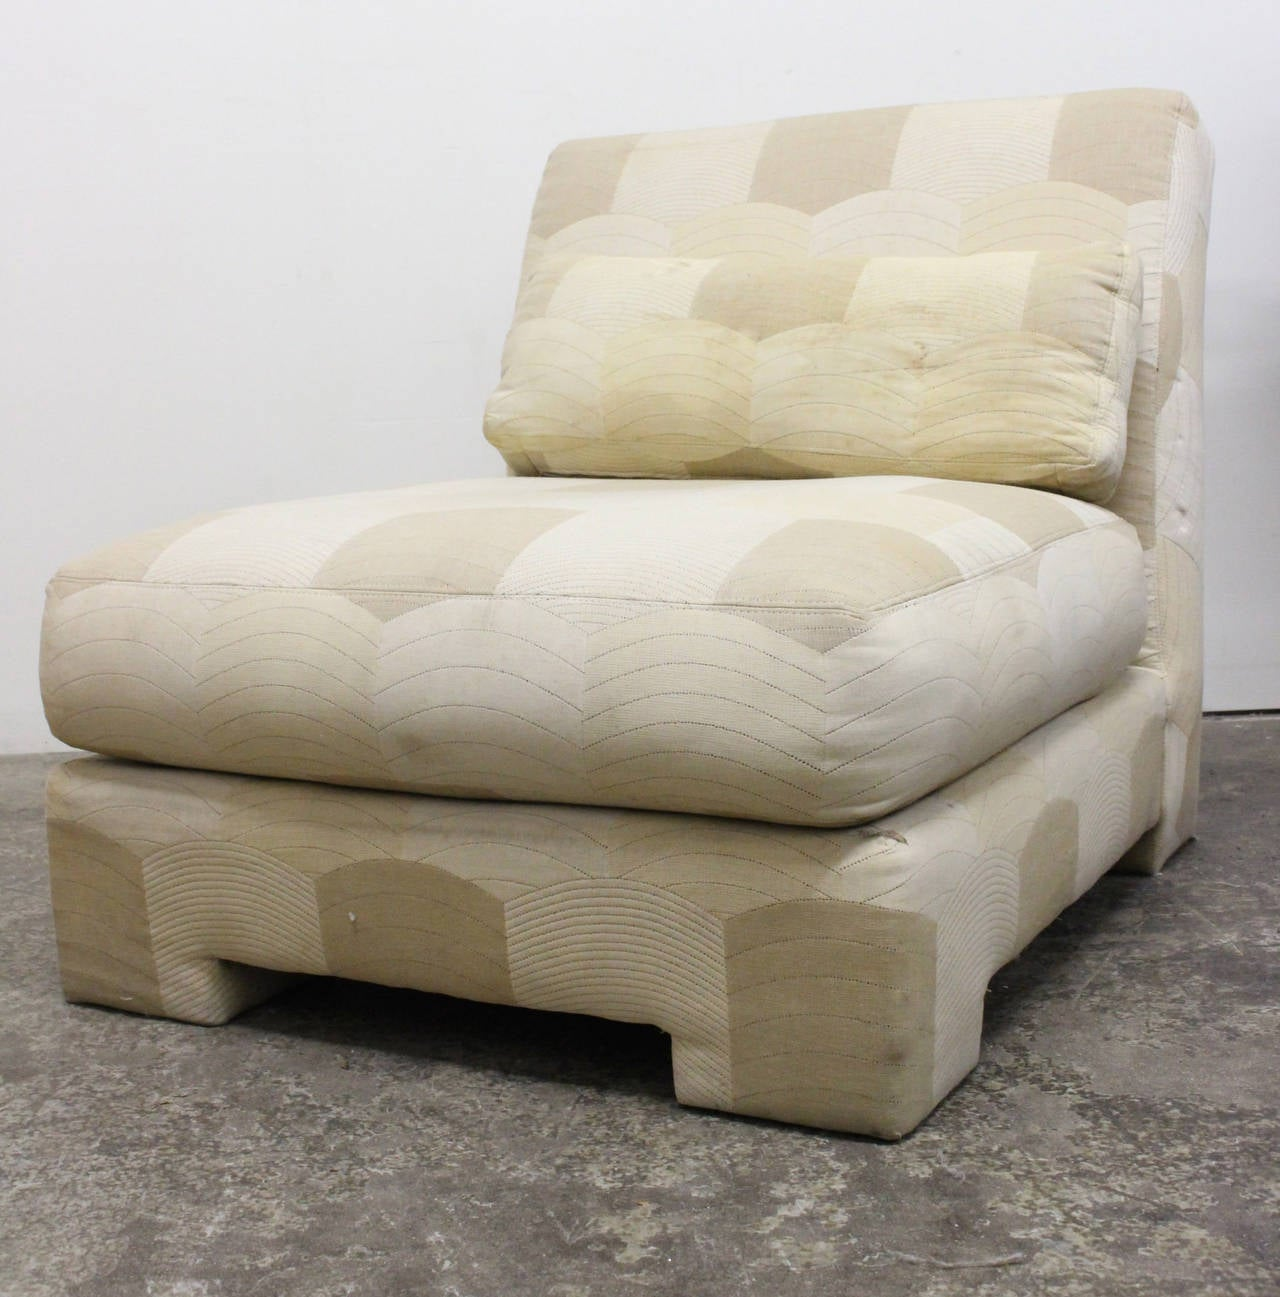 Pair of Slipper Lounge Chairs by Milo Baughman for Thayer Coggin 3